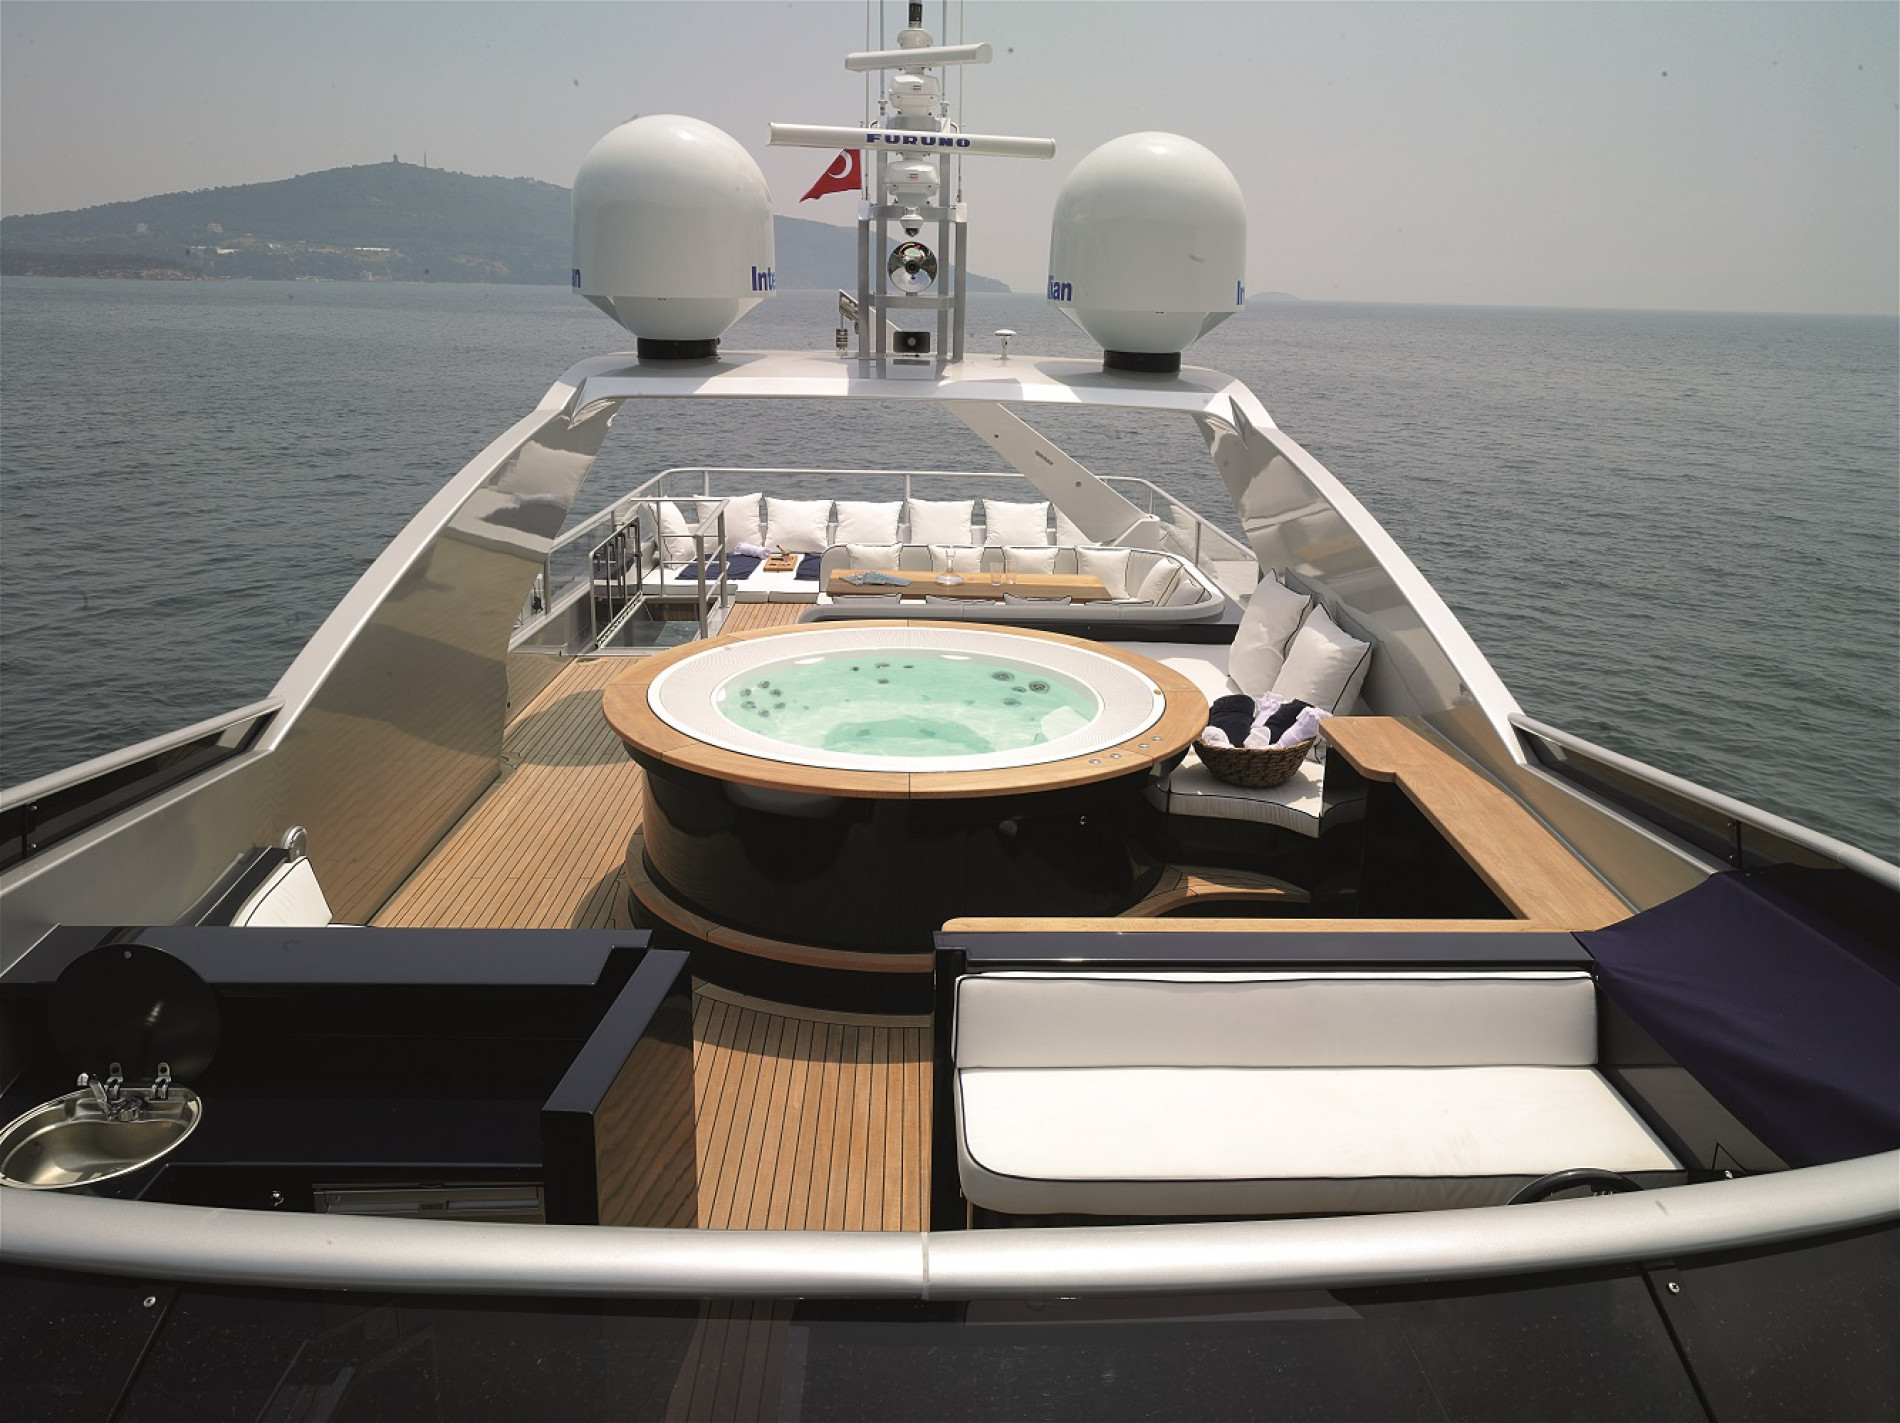 Яхта H Luxury Yachting 124 - фото 3 из 18